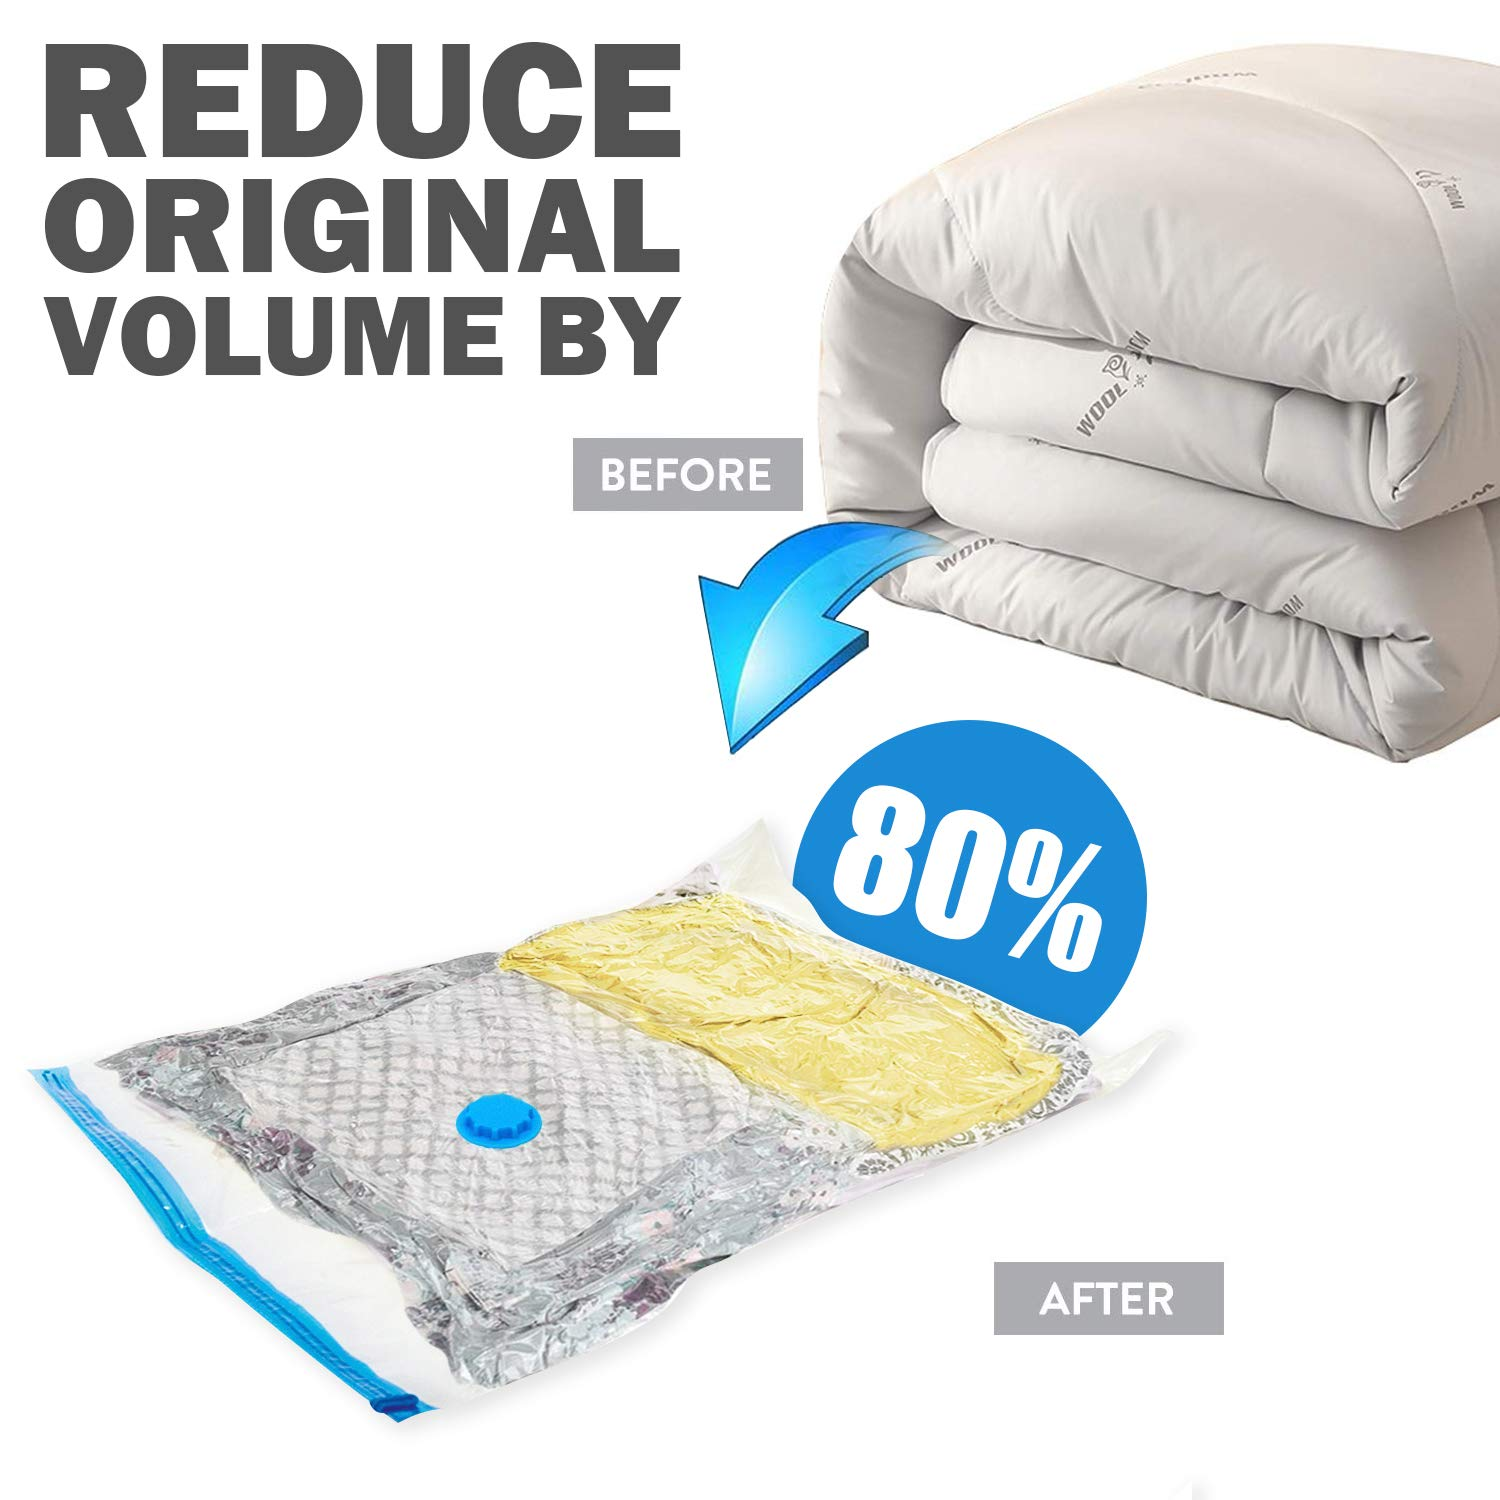 2 Jumbo+2 Extra Large+2 Medium+2 Small for Clothing Space-Saver Bags with Hand Pump Traveling Bedding Mildew-proof and Antibacterial Compression Storage Bags 8PCS Reusable Vacuum Storage Bags